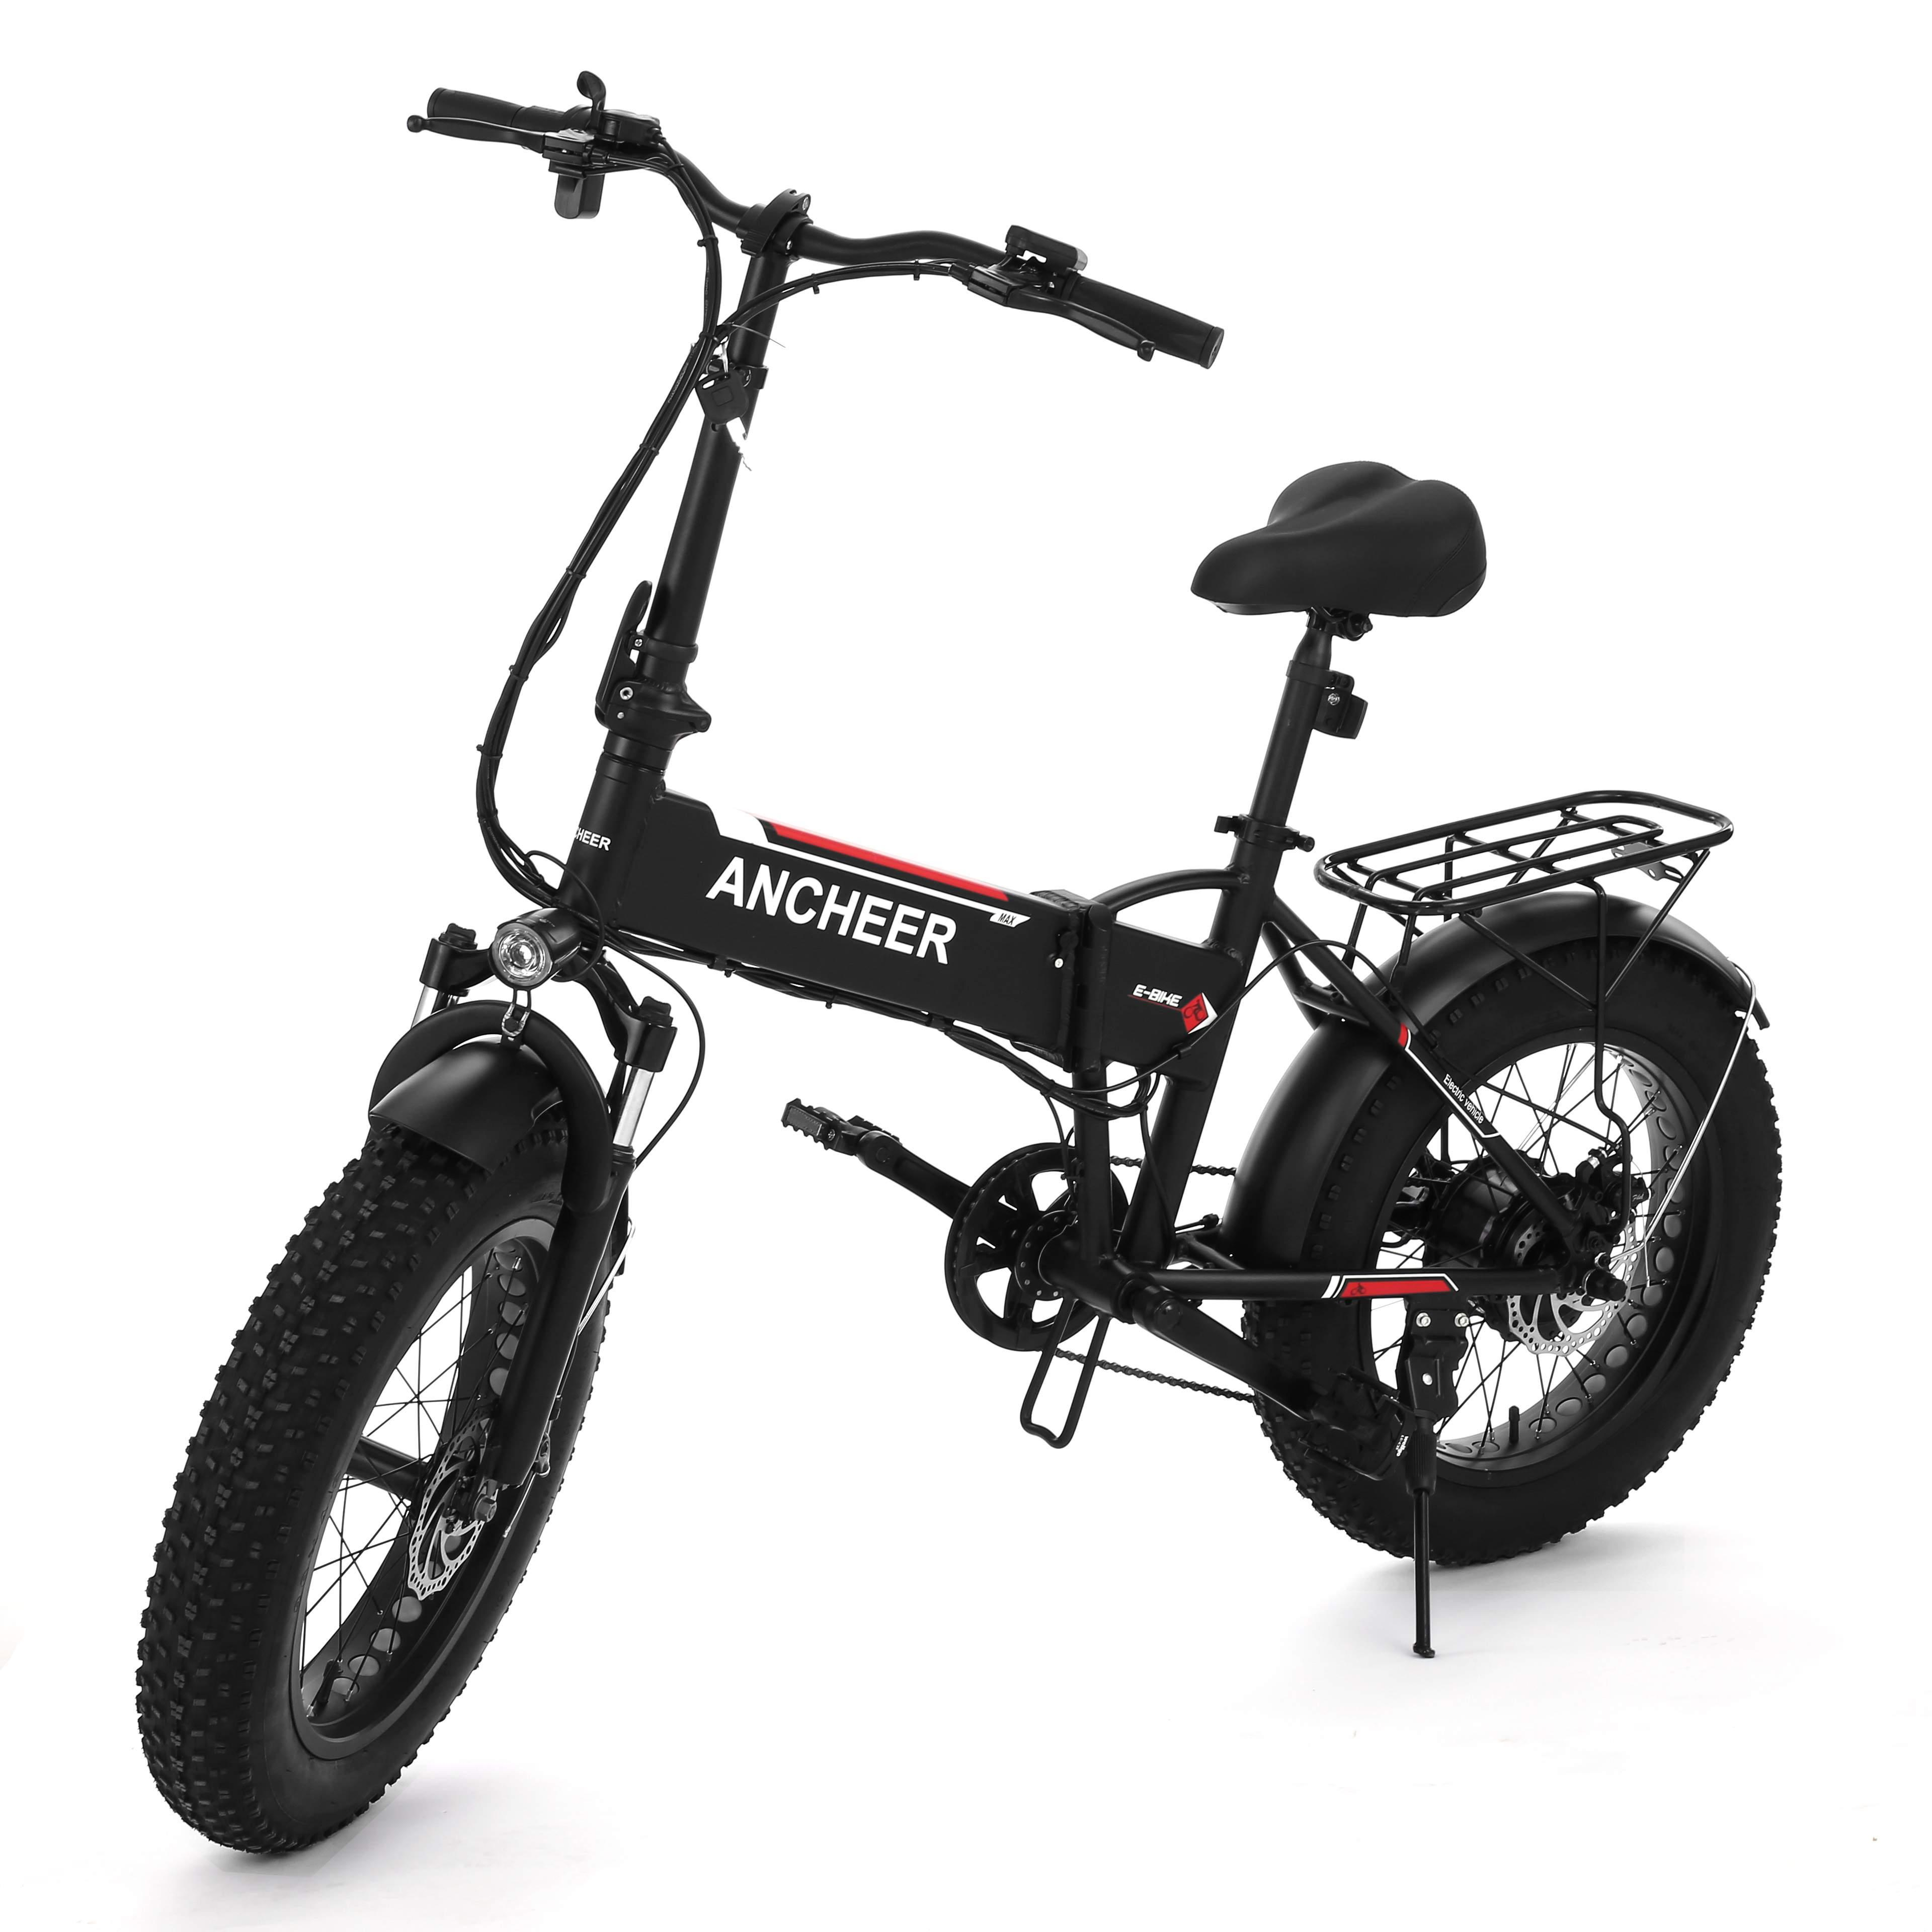 20Inch Folding Electric Bike Bicycle 250W Motor 6 Speeds  E-Bike With 48V 8AH Lithium Battery